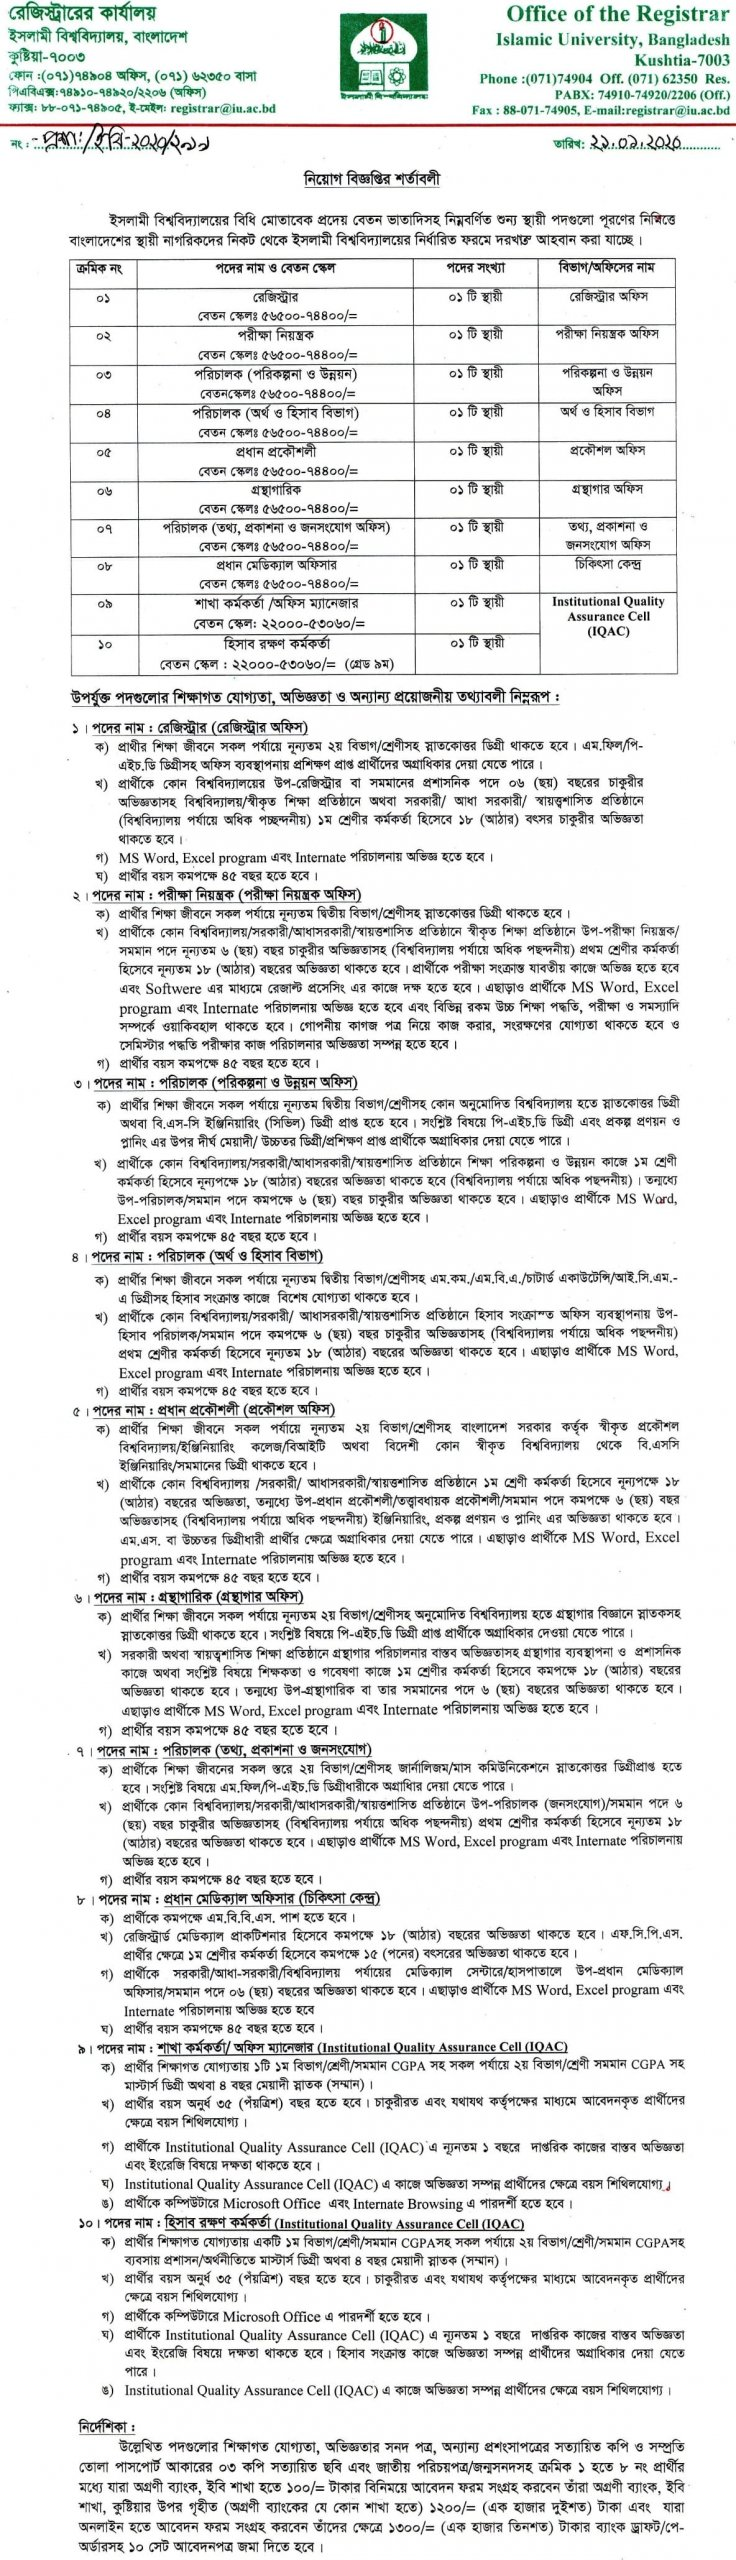 Islamic University, Bangladesh Job Circular 2020